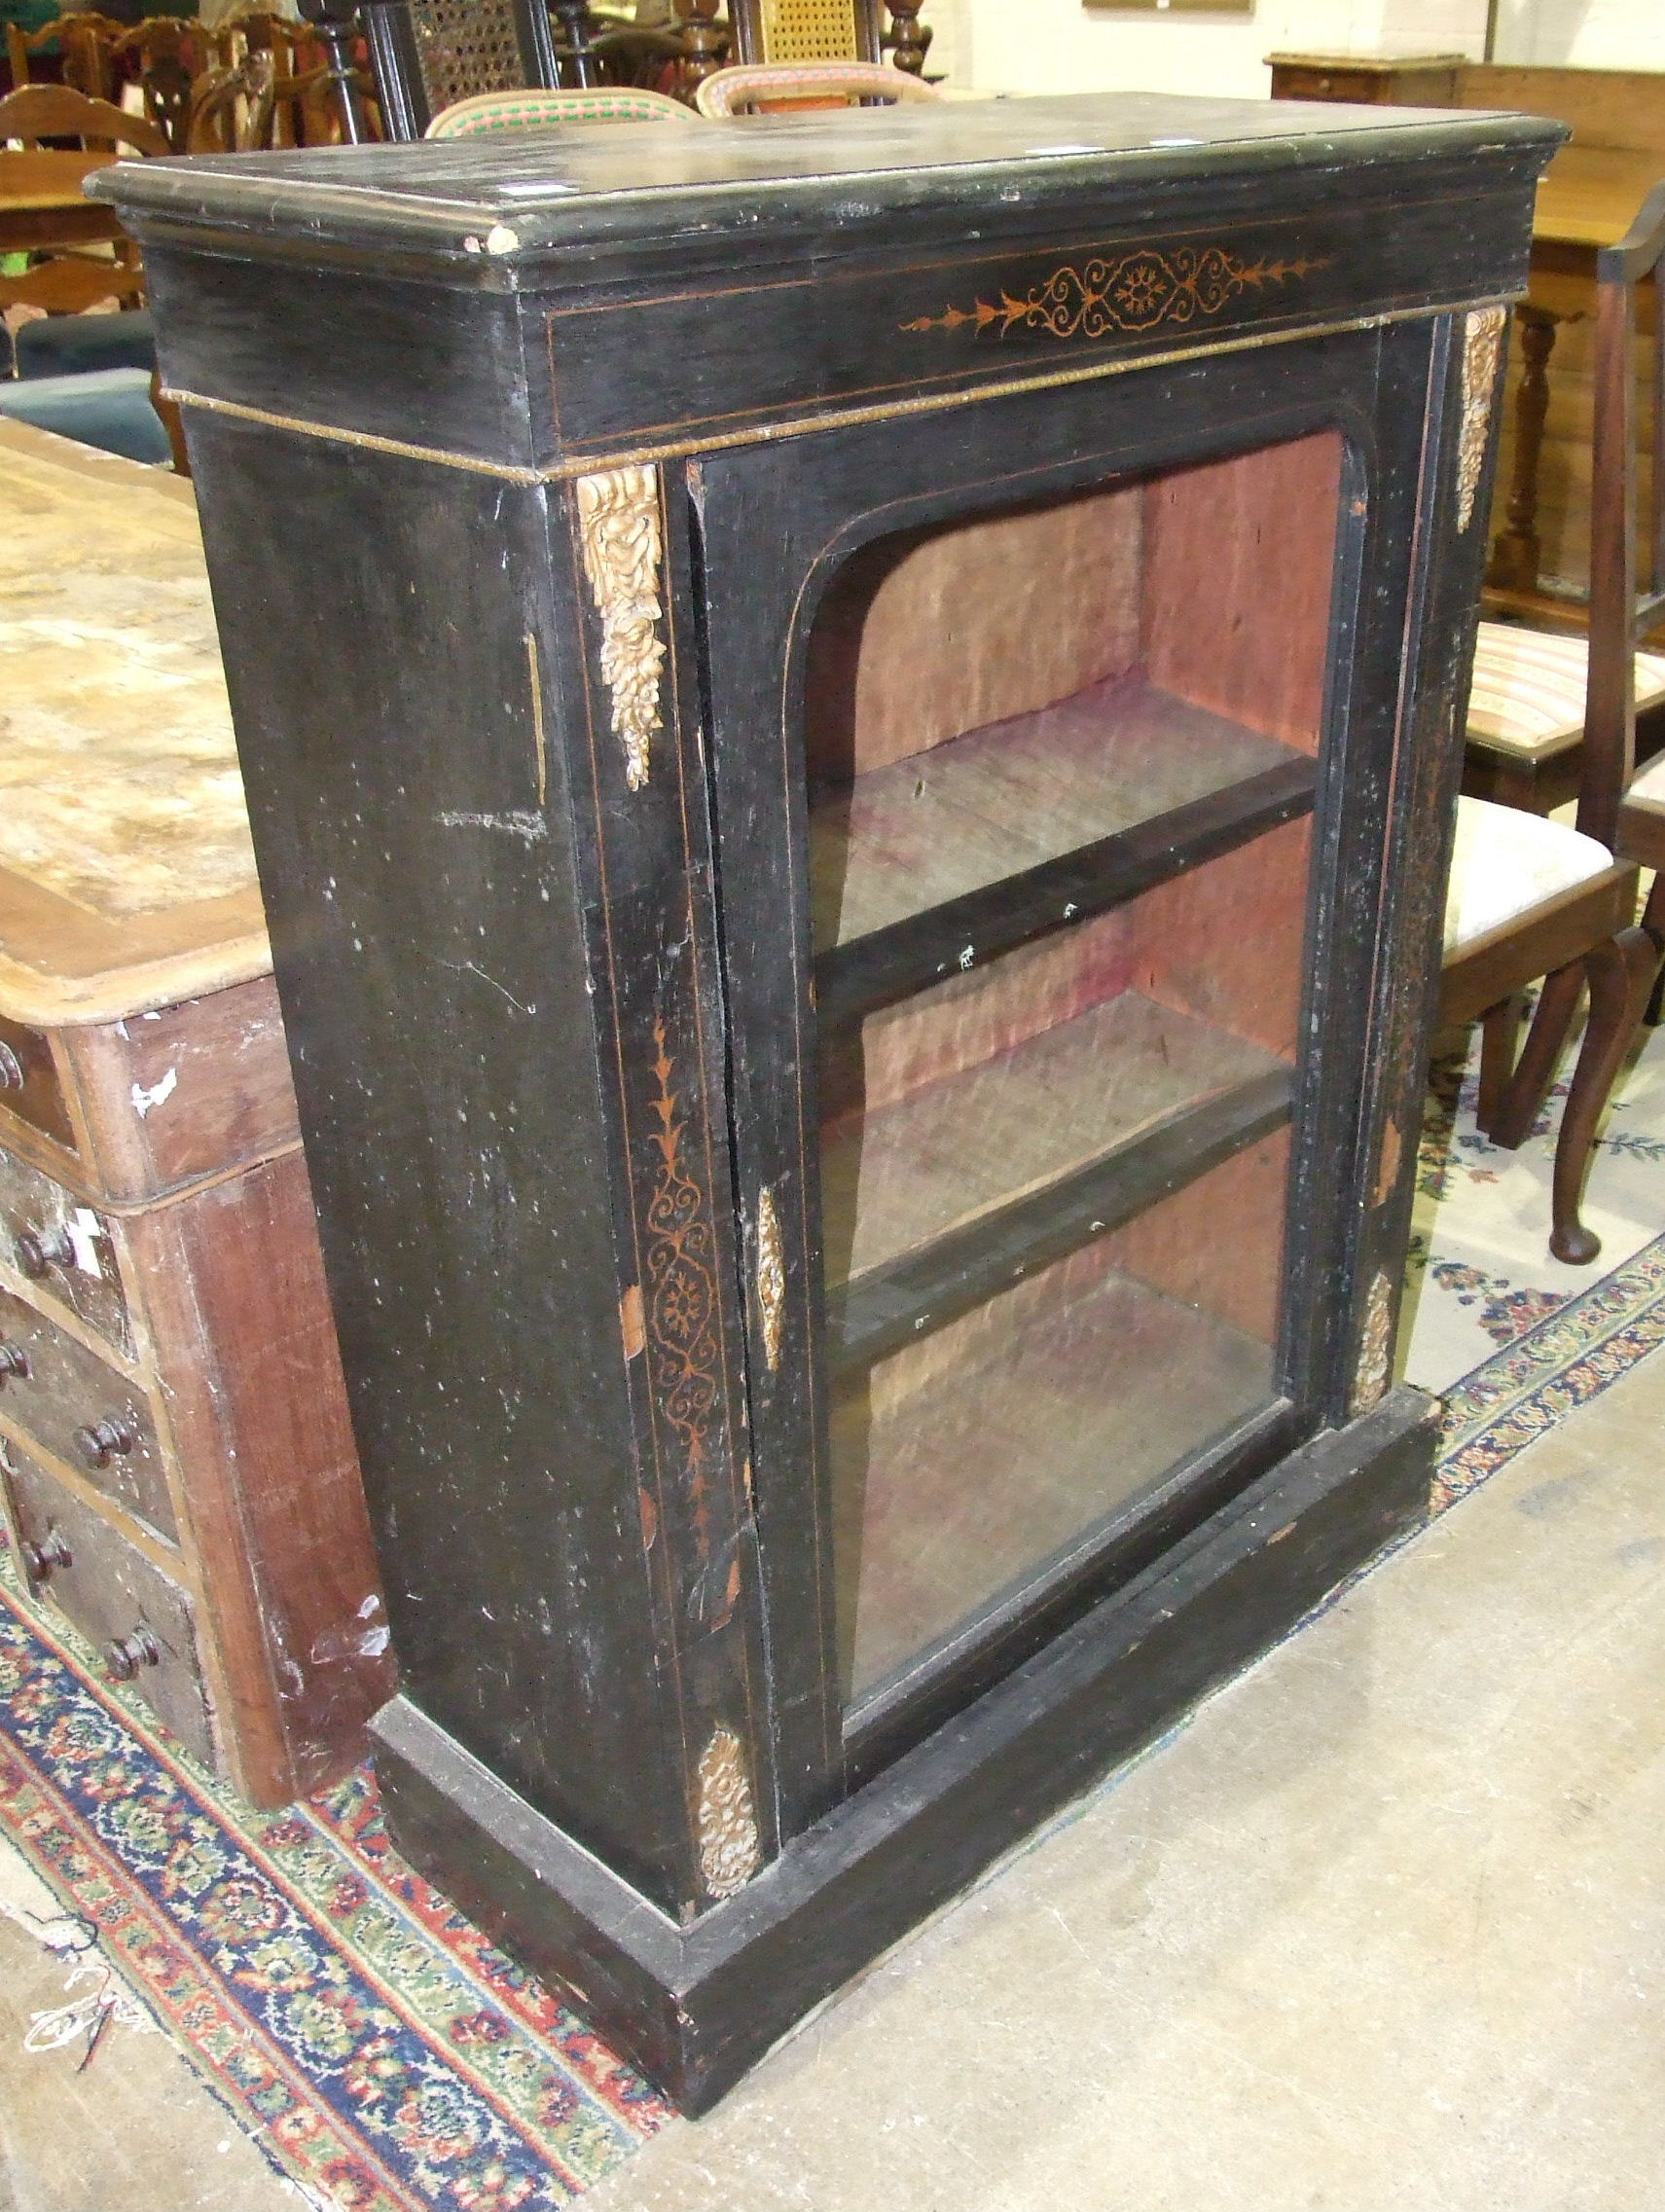 Lot 38 - A 19th century ebonised display cabinet, 76cm wide and a 19th century pedestal writing desk, both in